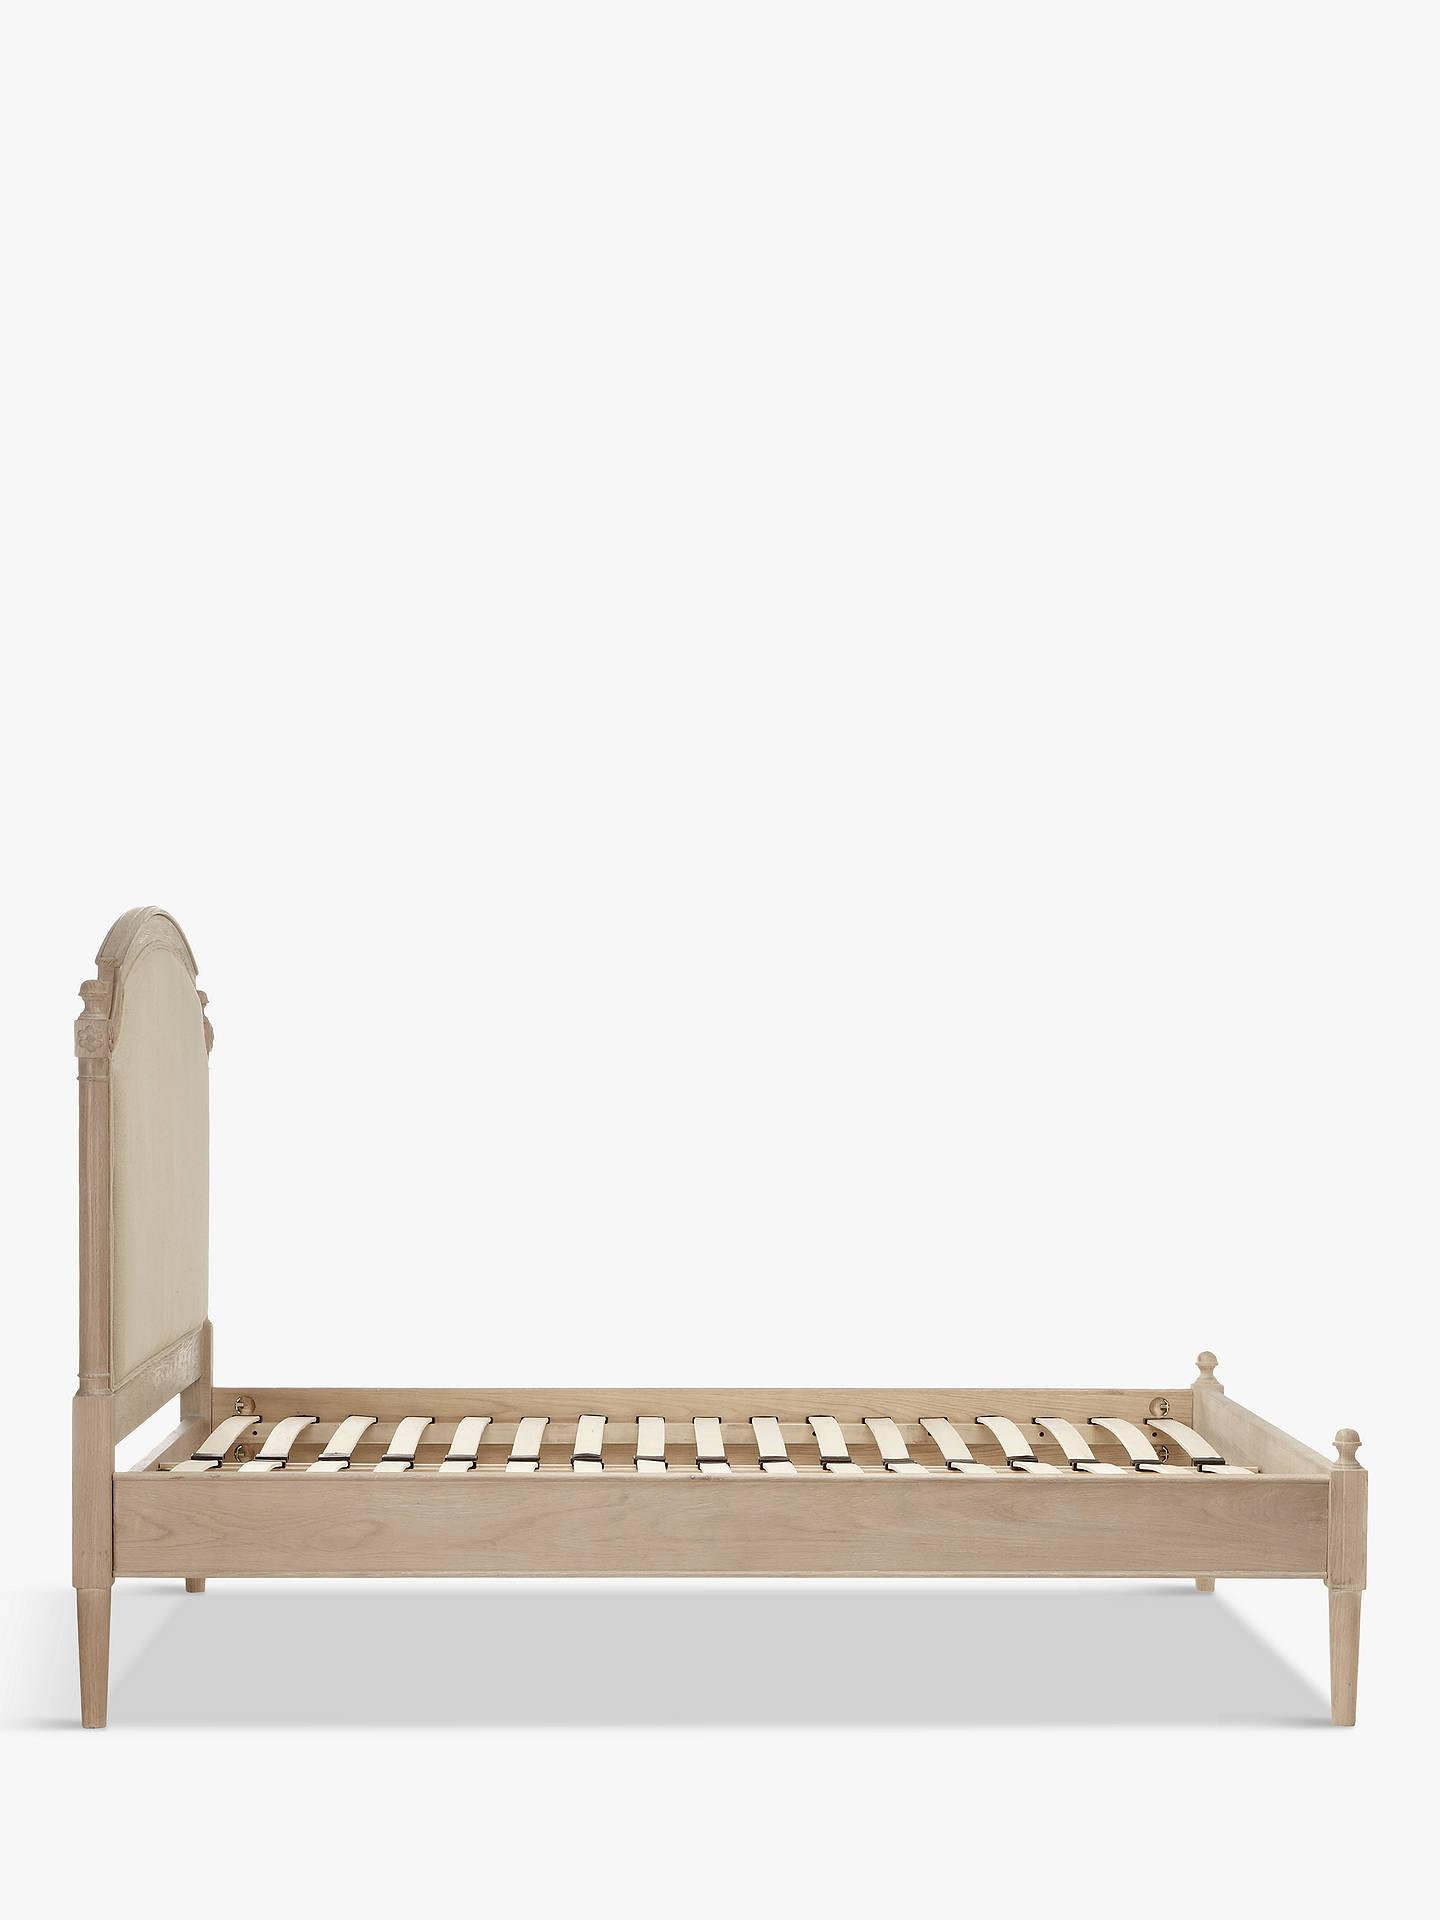 BuyJohn Lewis & Partners Etienne Louis Low End Bed Frame, King Size Online at johnlewis.com